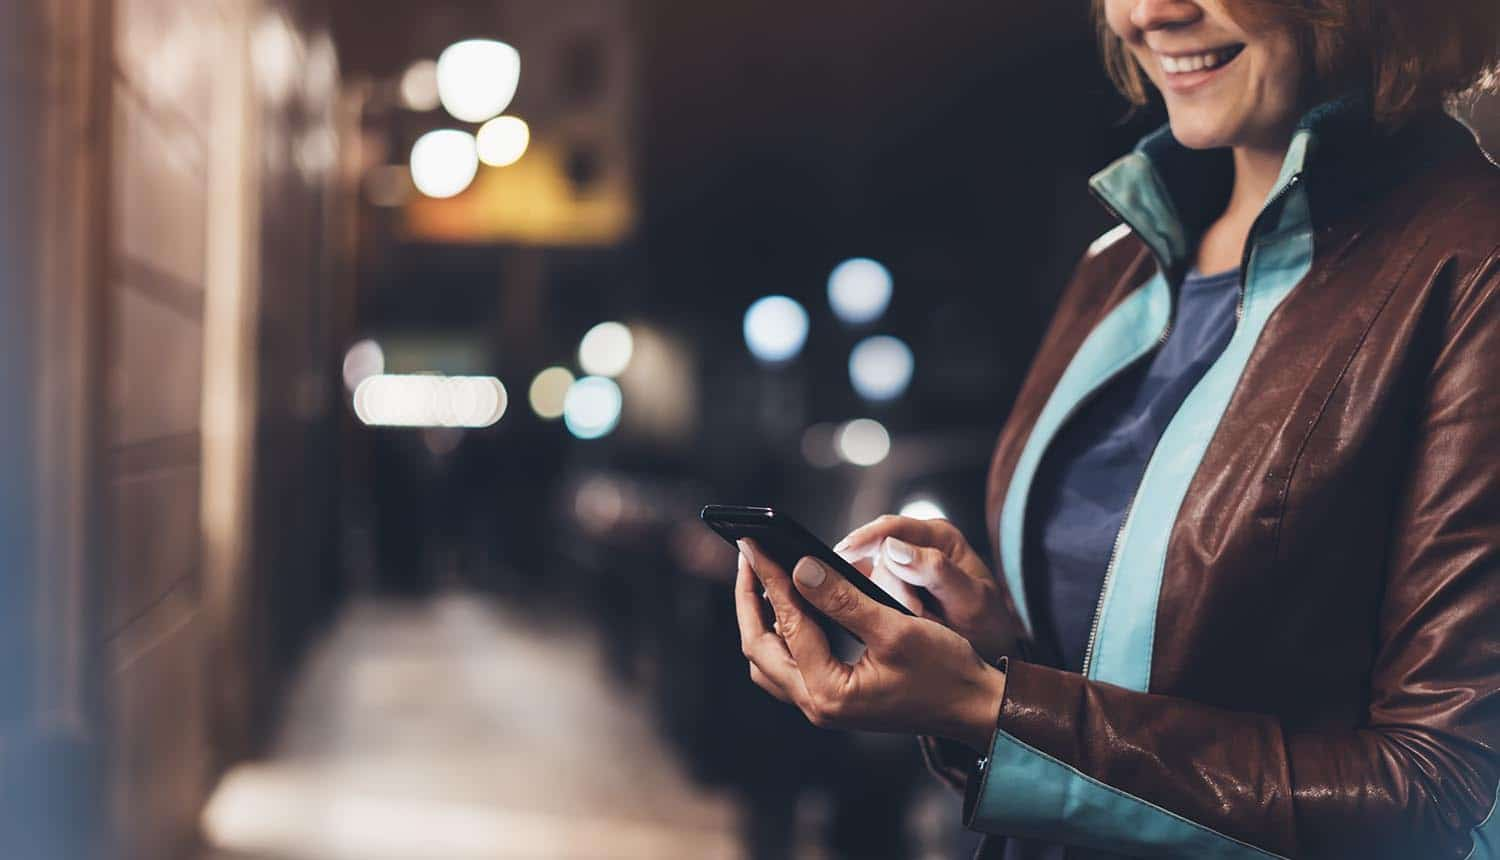 Woman smile and point finger on mobile app showing cyber threats during holiday shopping